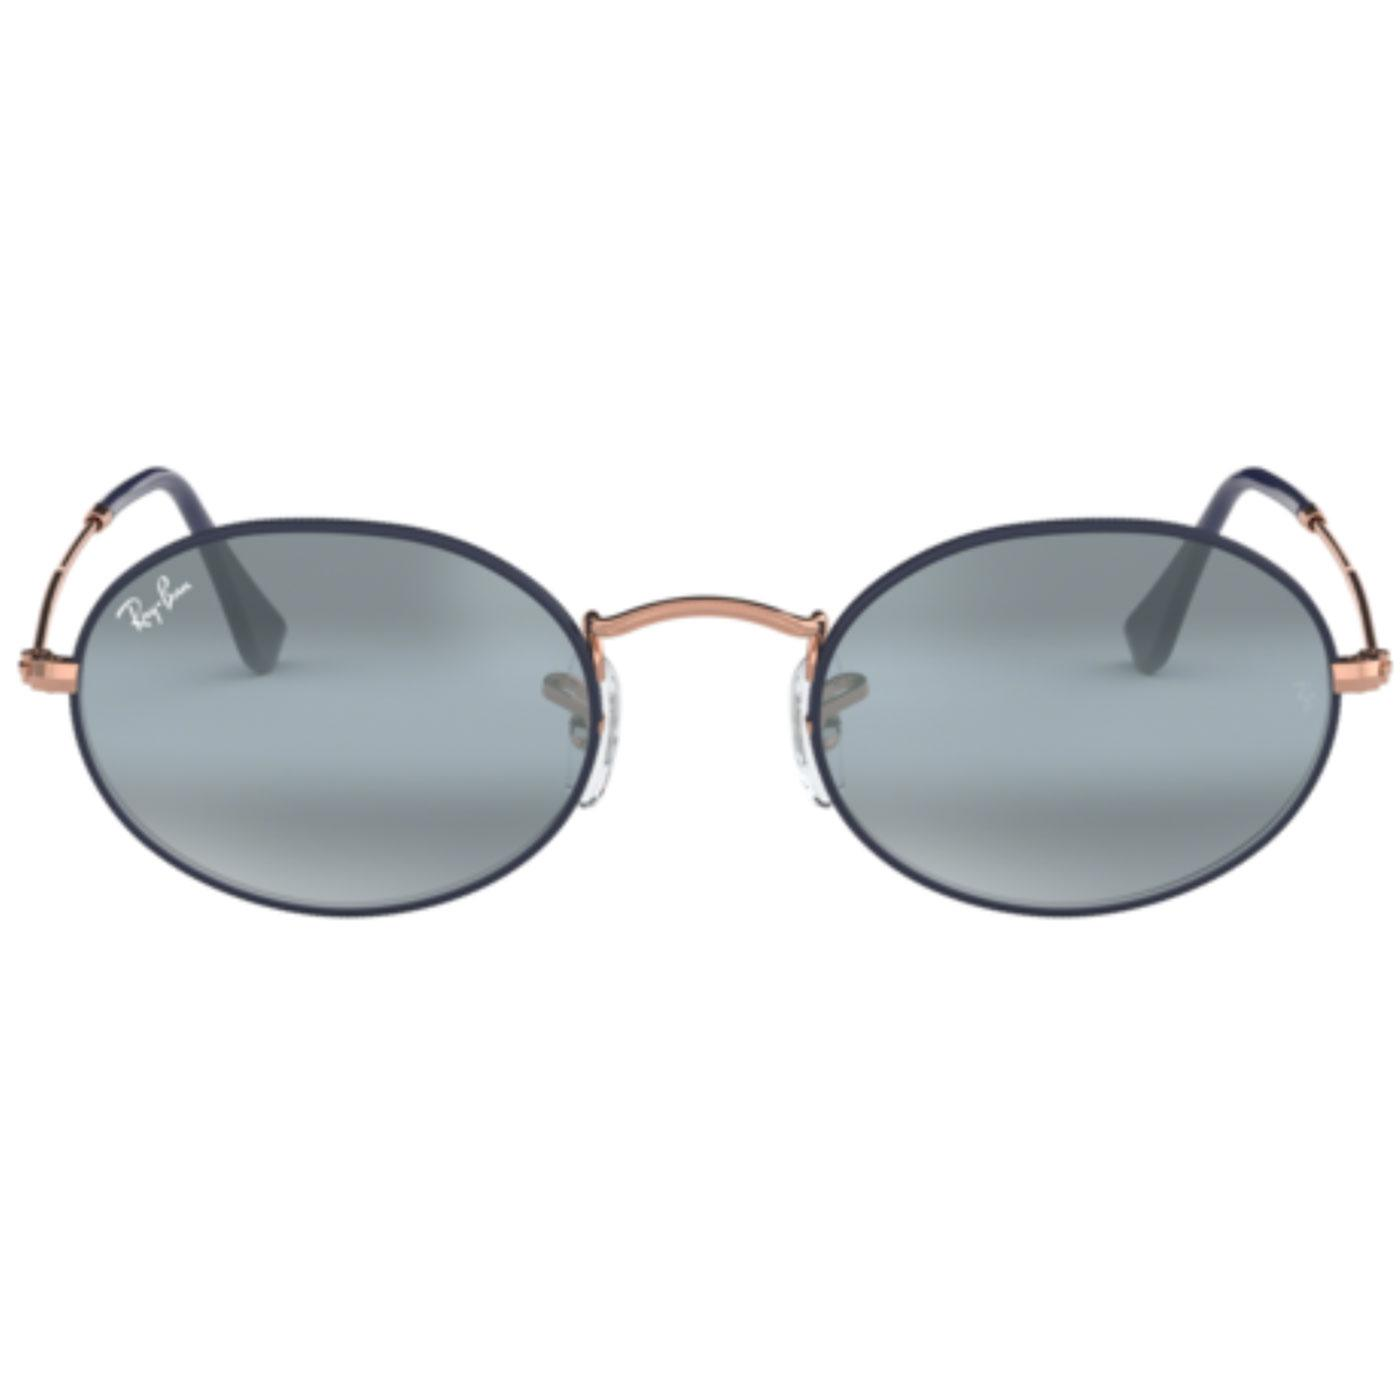 RAY-BAN Oval Retro 60s Mod Sunglasses Copper/Blue